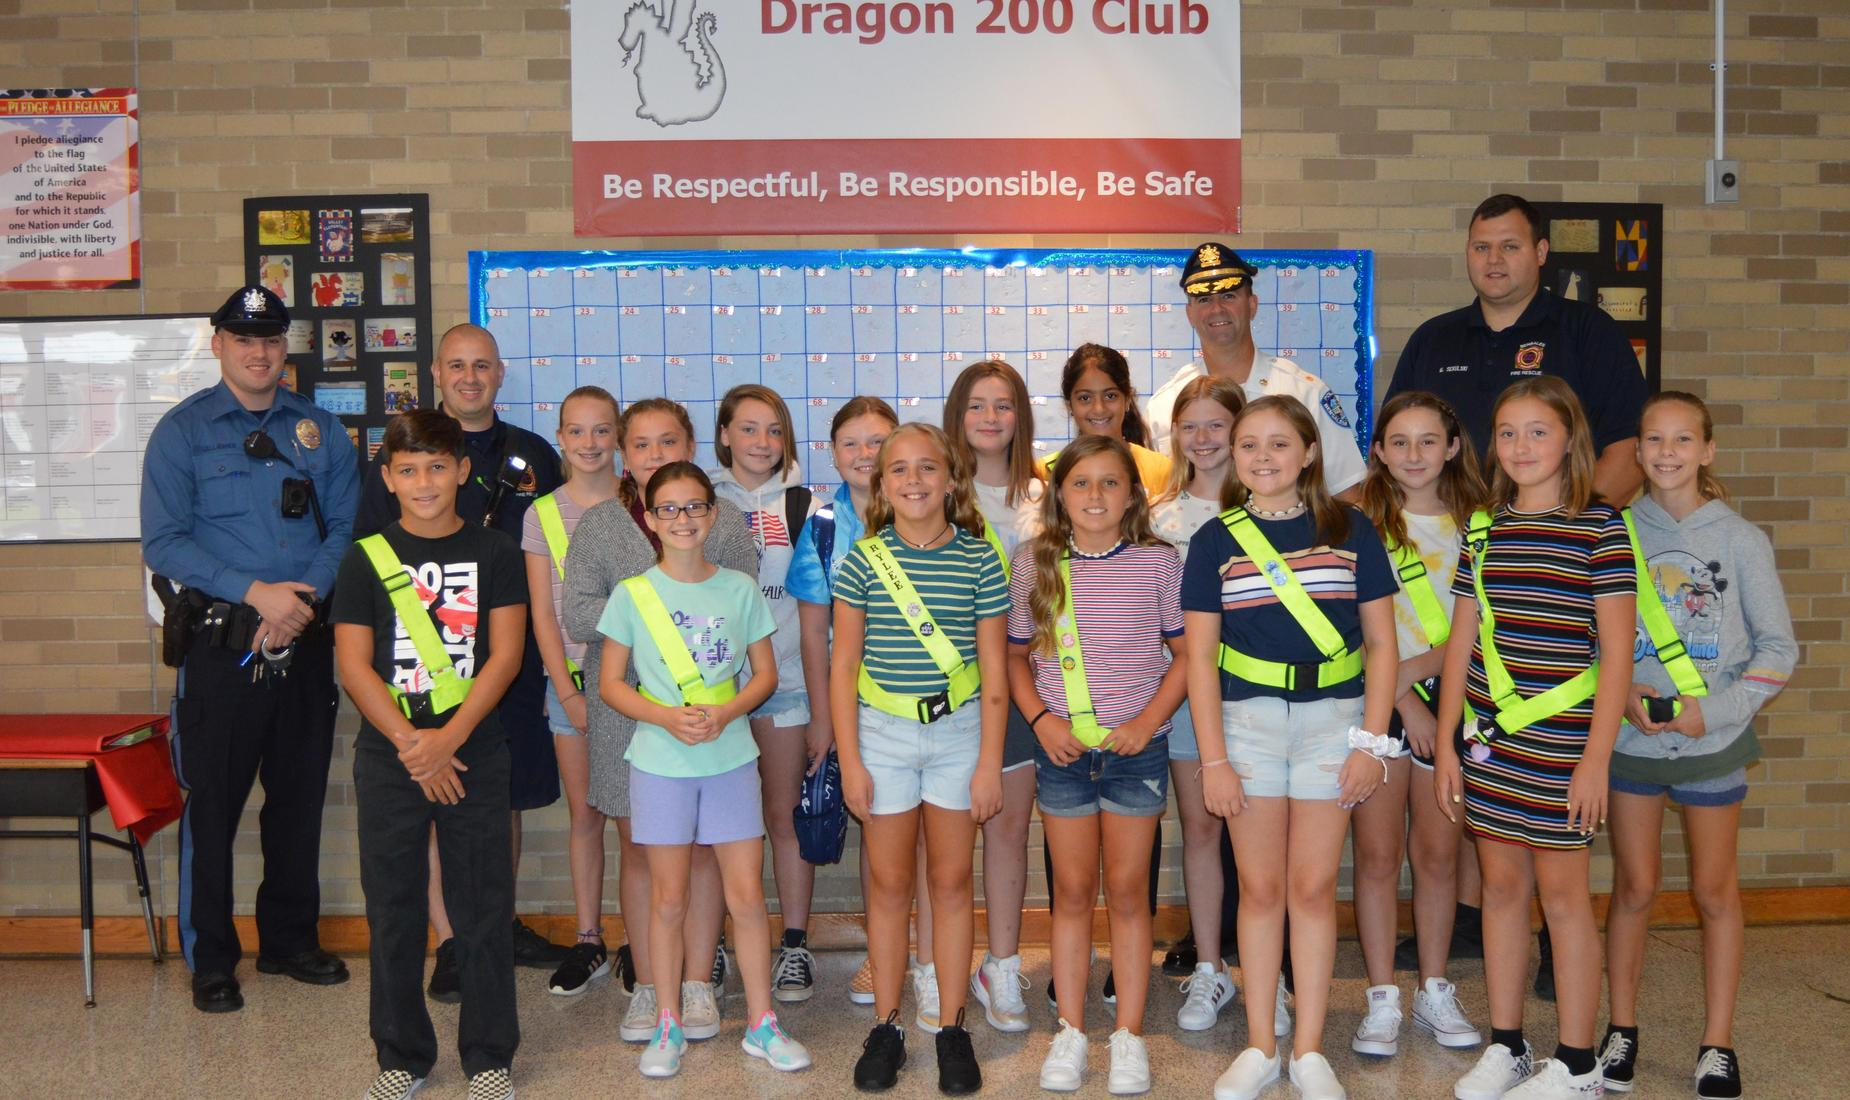 15 Safeties with their yellow belts pose on first day of school with 2 members of the Bensalem Police and Fire Rescue